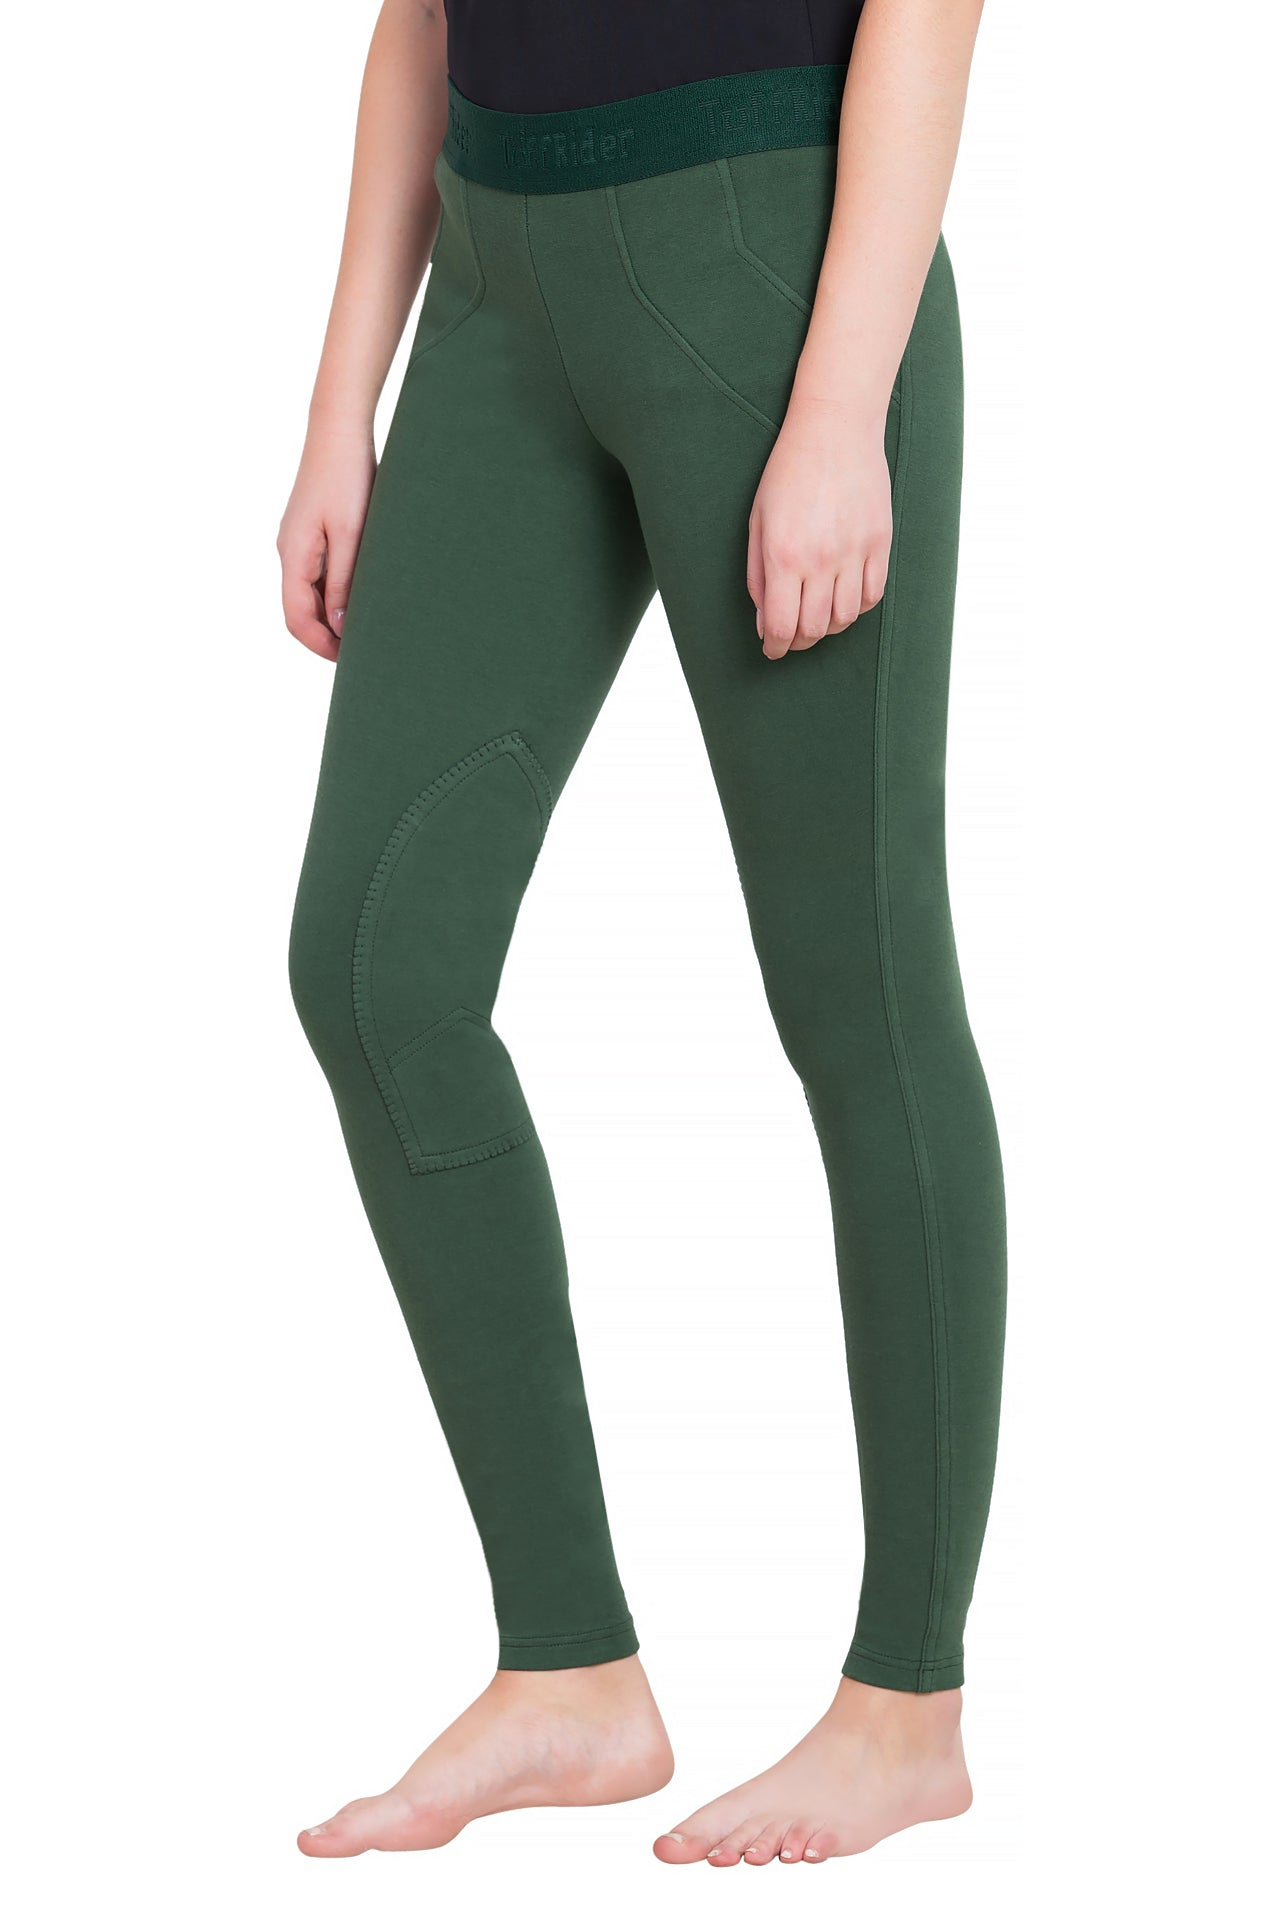 TuffRider Ladies Cotton Schoolers Riding Tights